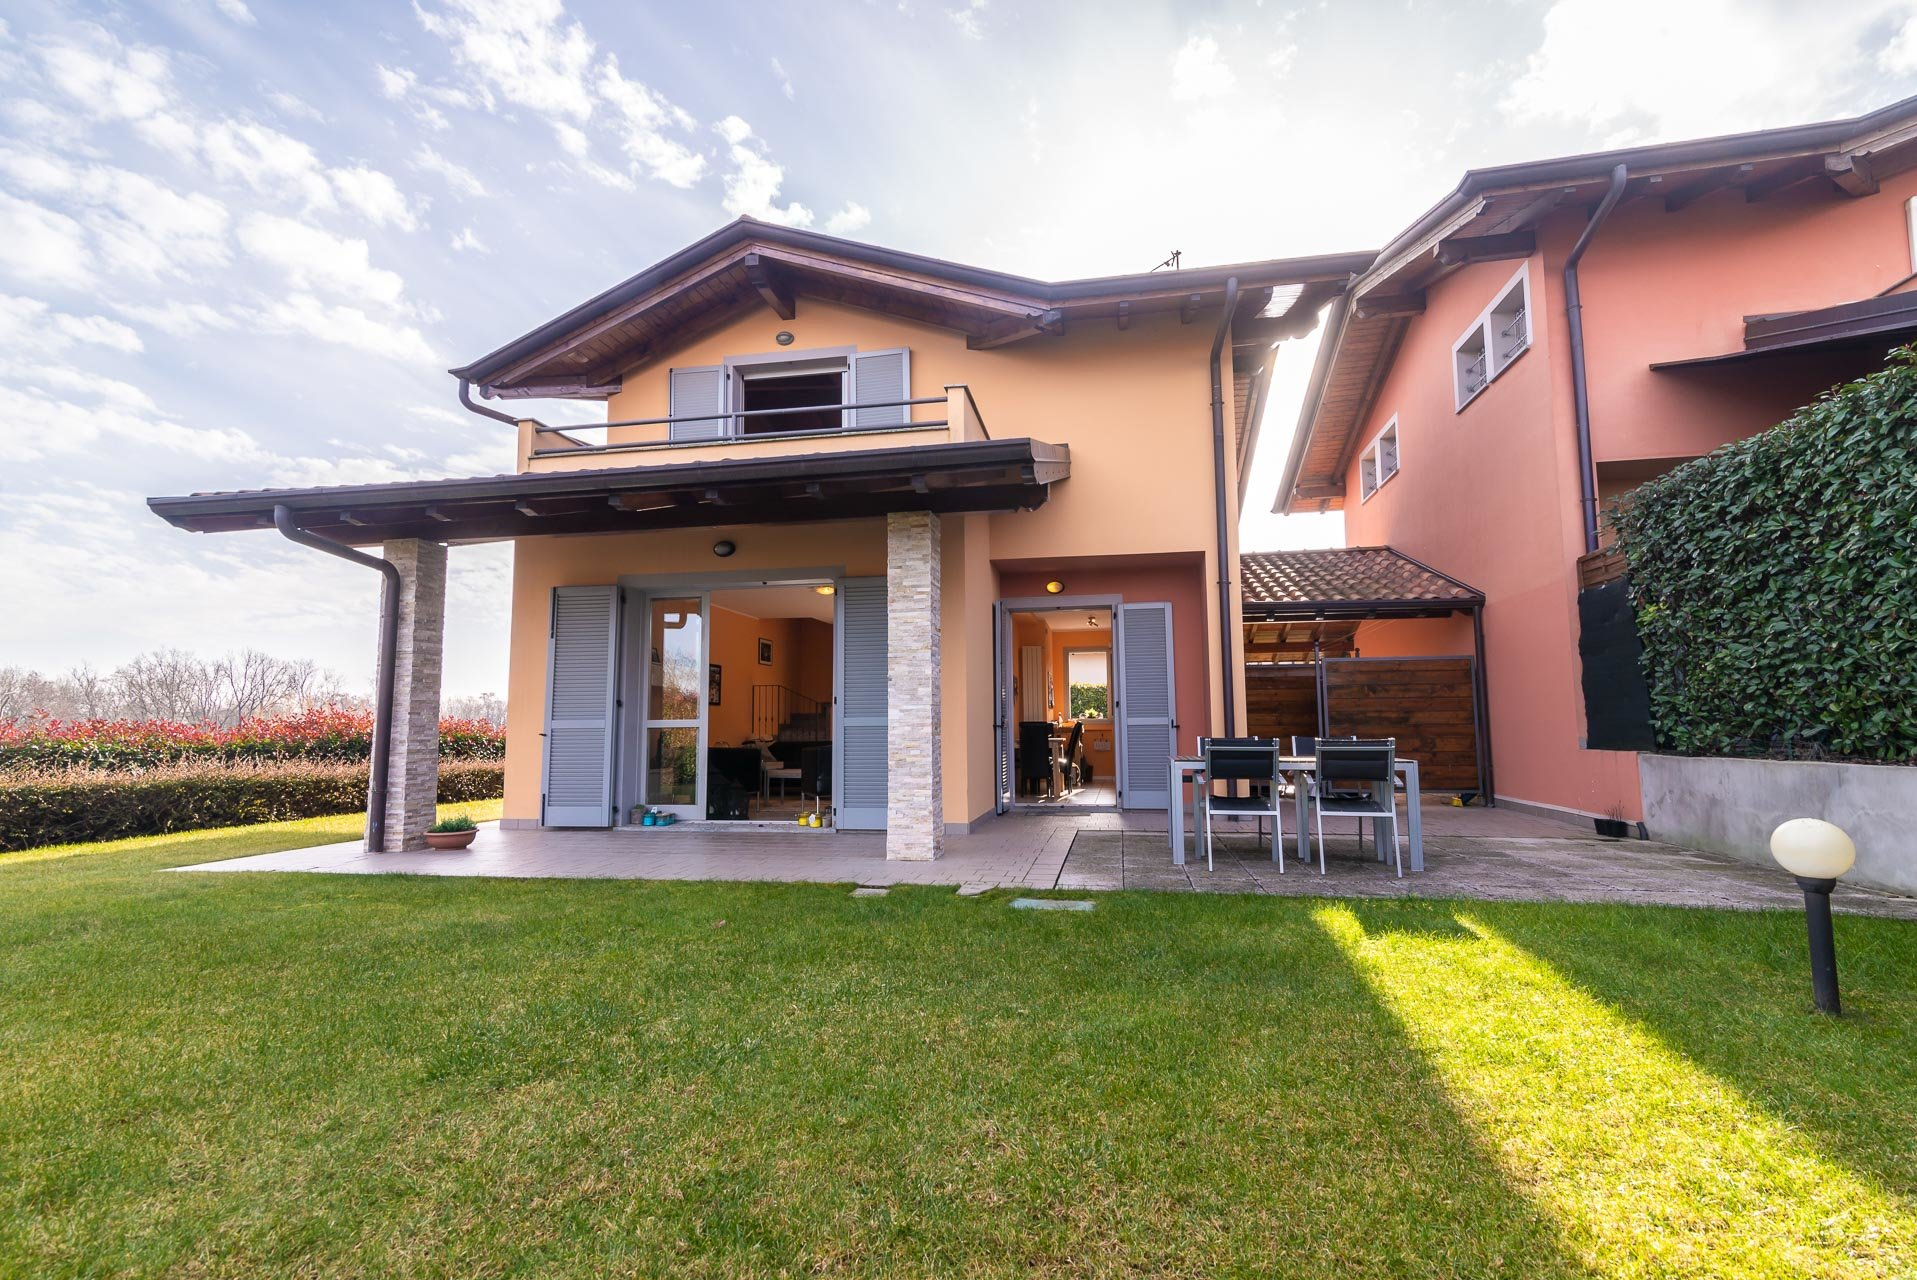 Villa for sale in a residence with swimming pool in Paruzzaro -  entrance